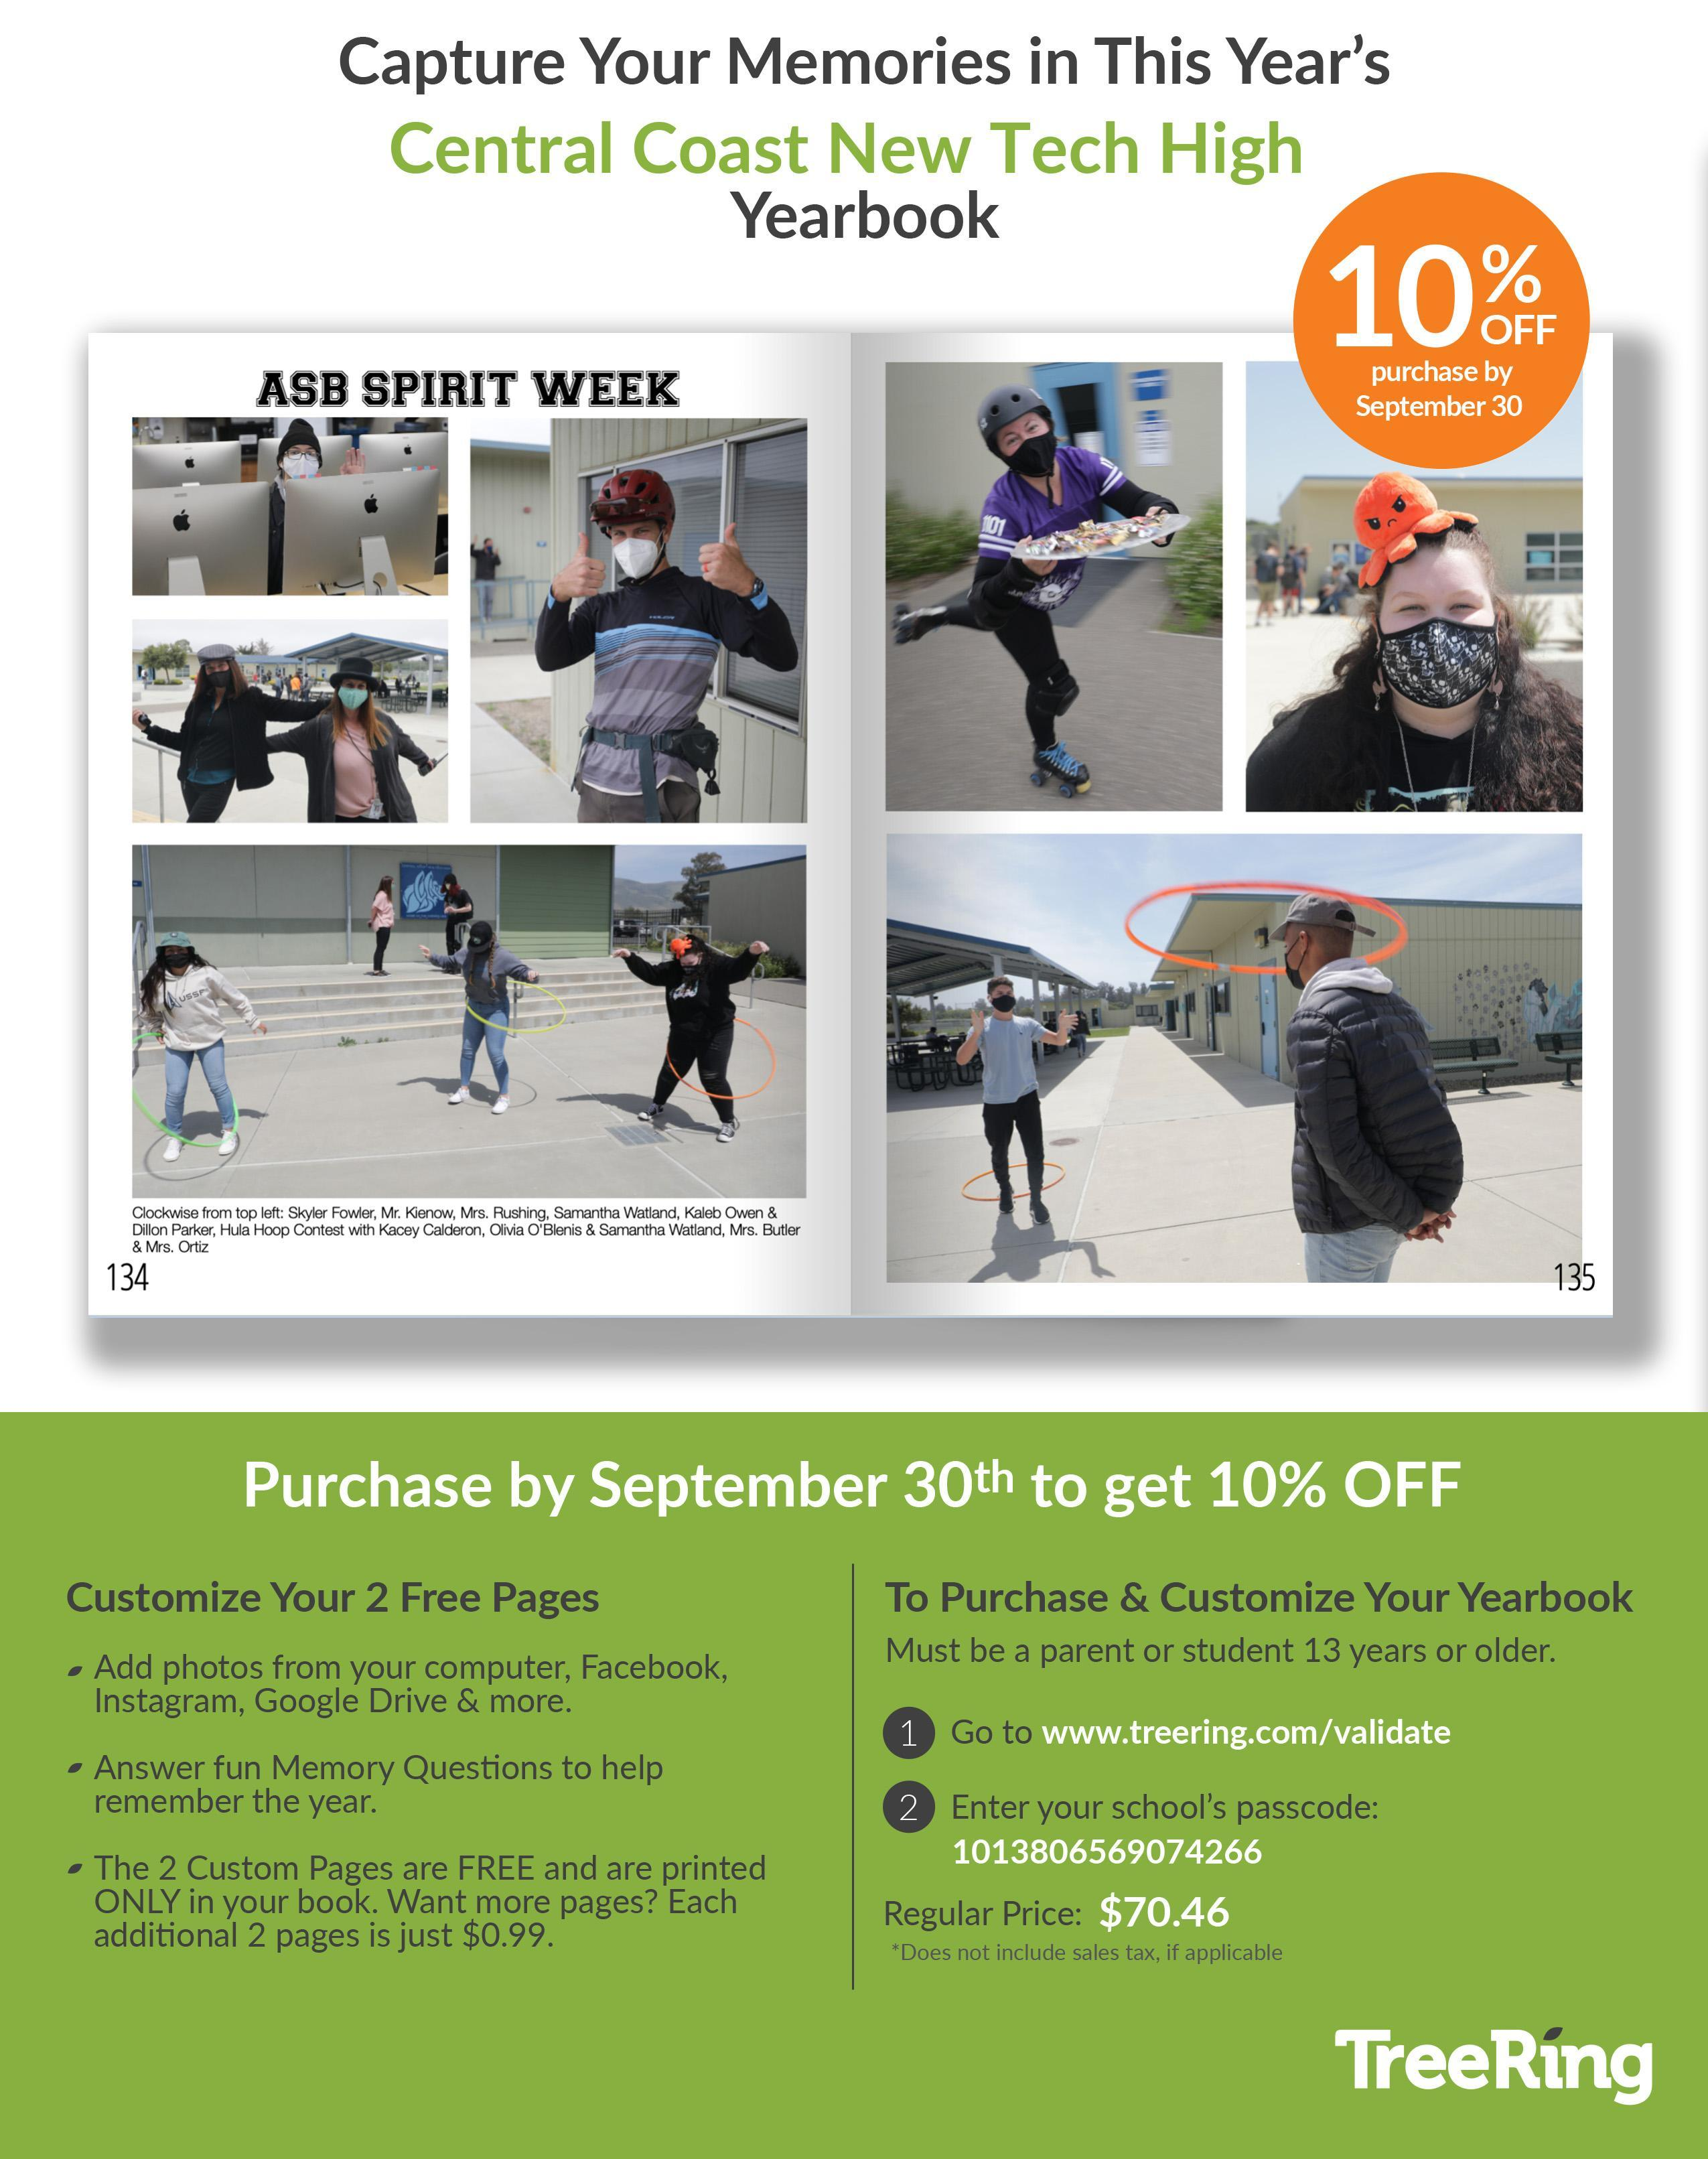 Get 10% off if you order by Sept. 30